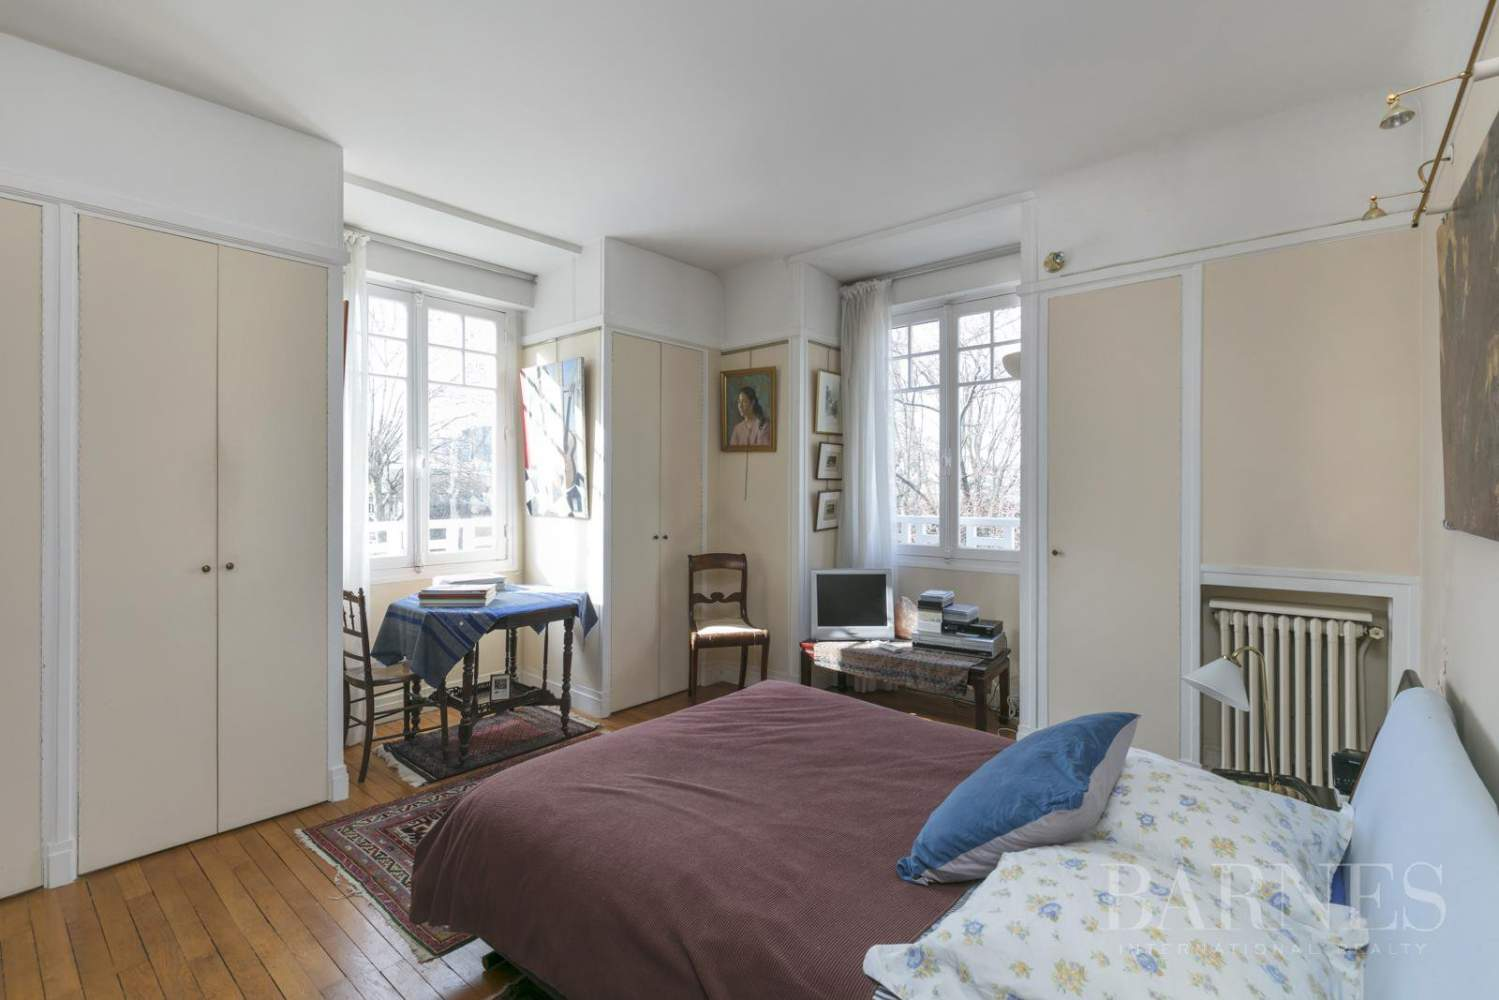 BOURGEOIS HOUSE WITH GARDEN - PRIVATE ROAD - NEUILLY/SAINT-JAMES picture 7